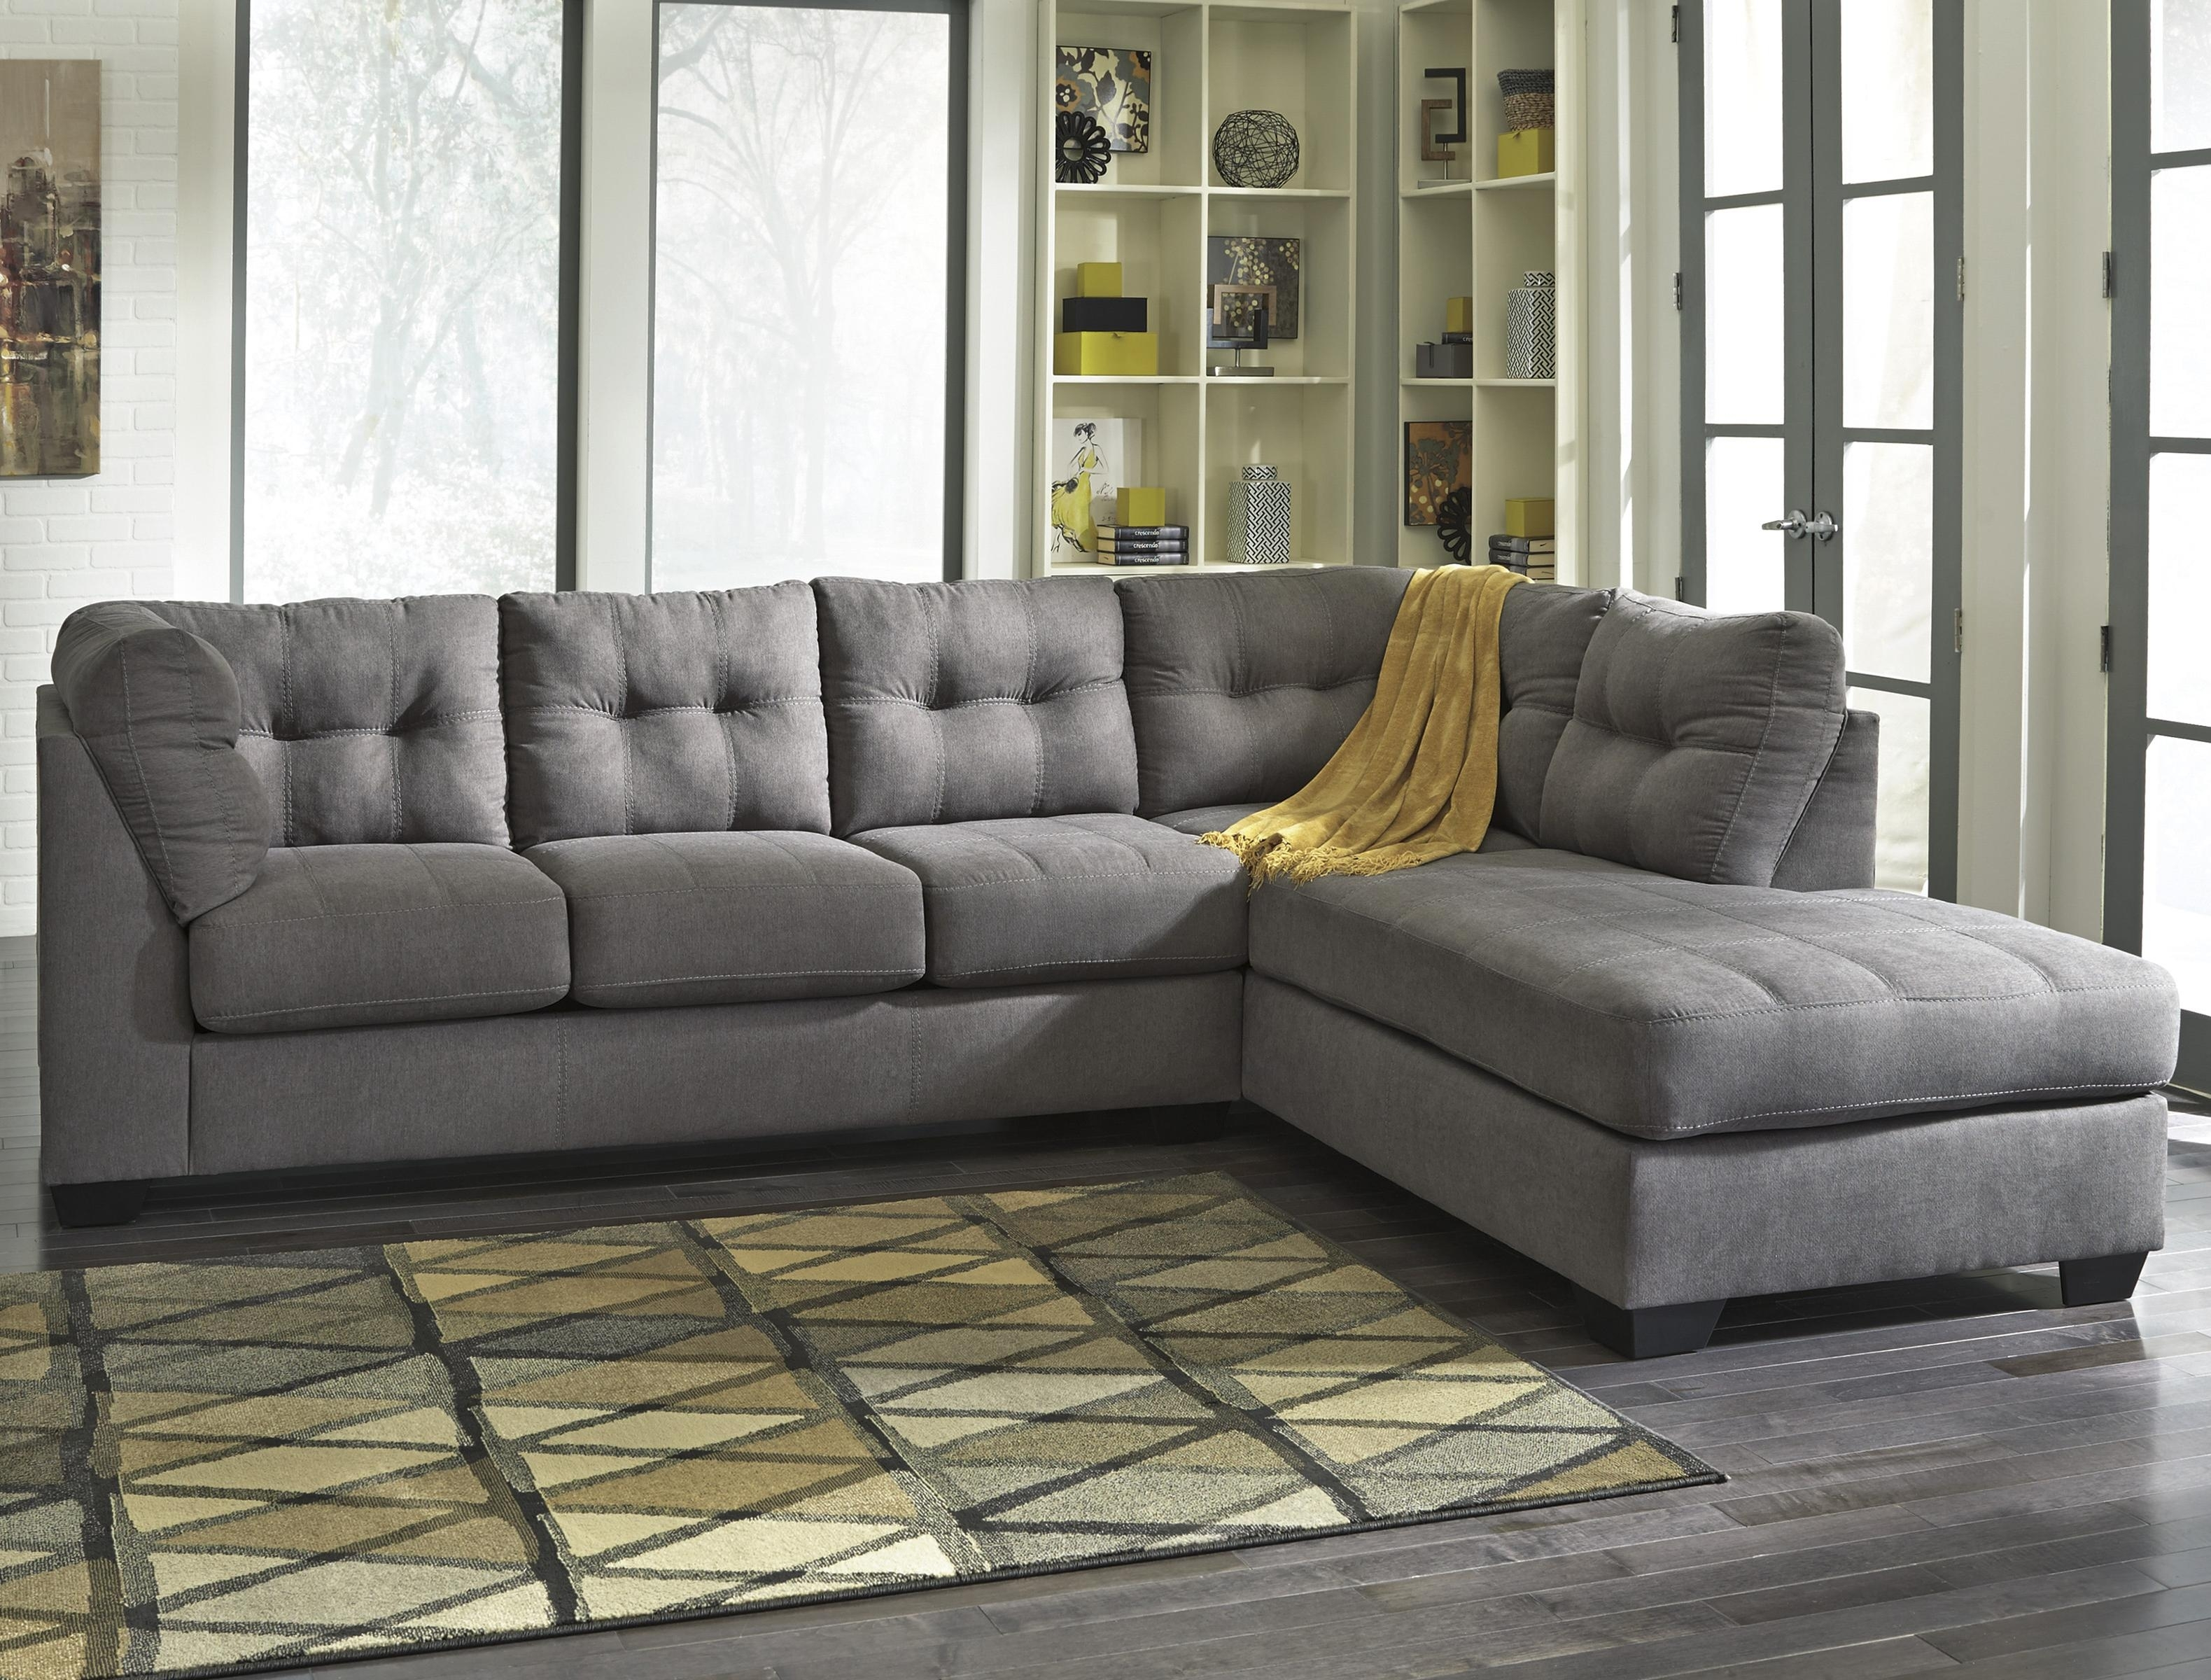 Benchcraft Maier - Charcoal 2-Piece Sectional With Right Chaise within Sierra Foam Ii 3 Piece Sectionals (Image 6 of 30)